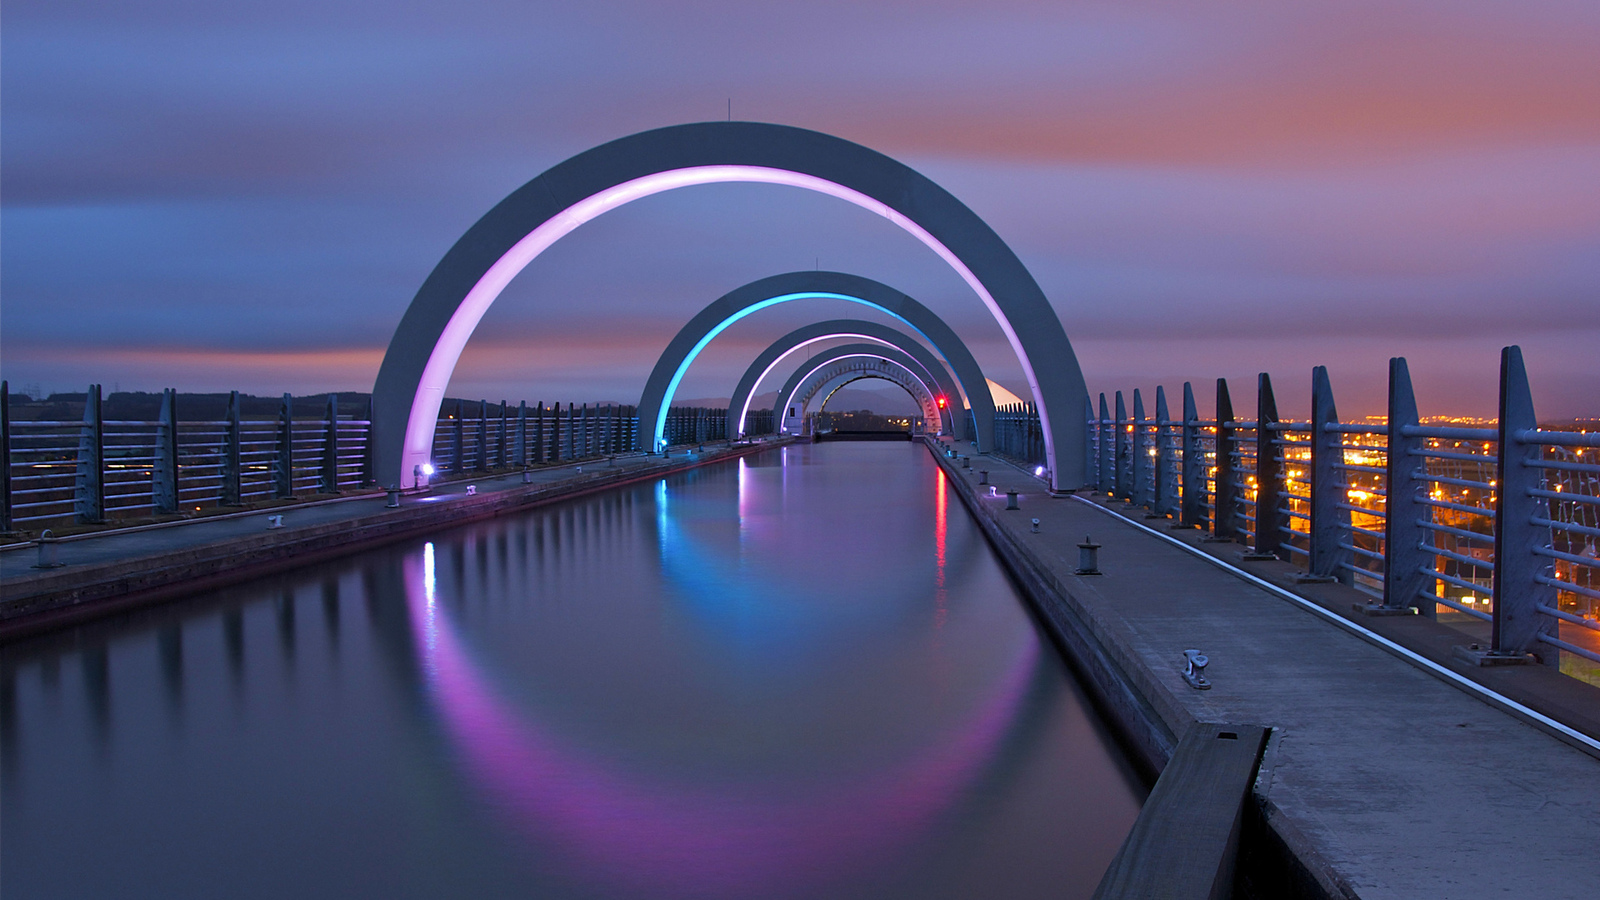 lights, great britain, united kingdom, city, falkirk, night, scotland, великобритания